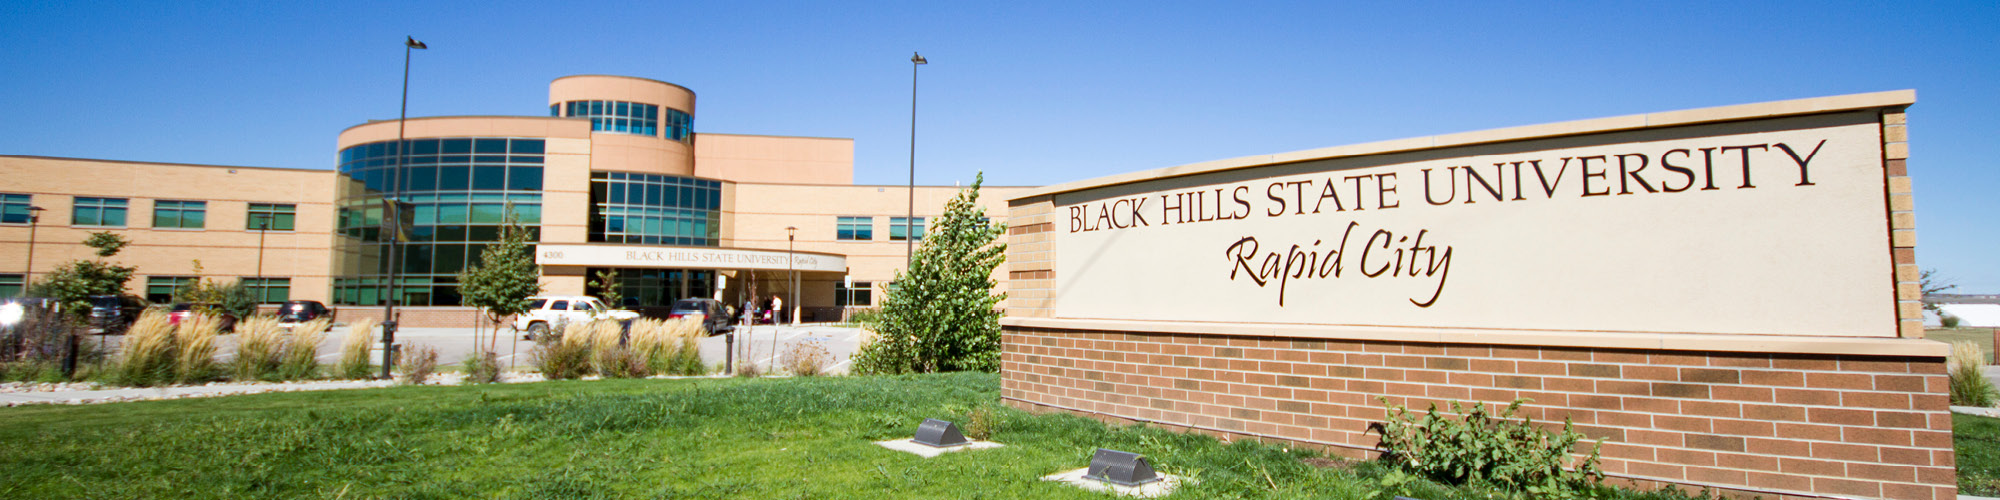 Black Hills State University in Rapid City